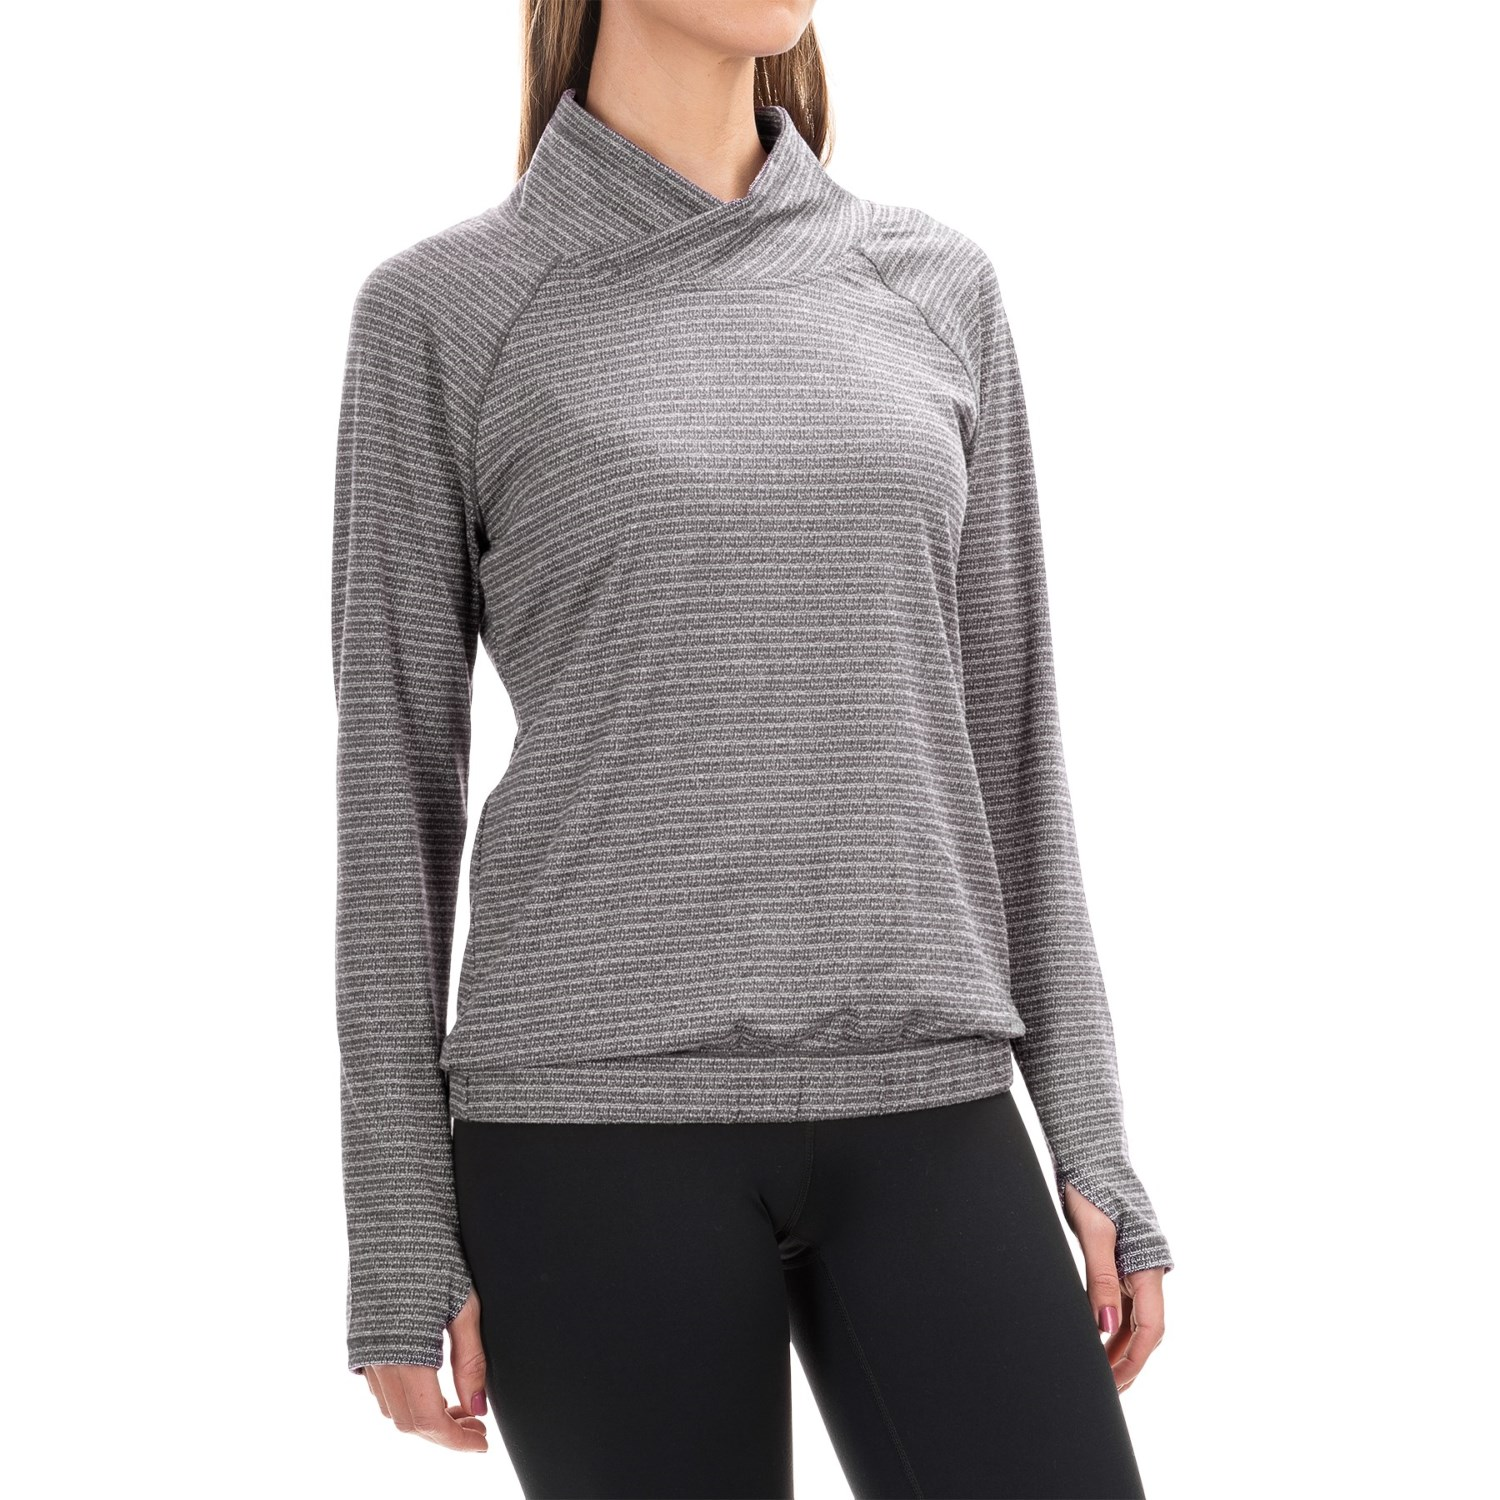 Rbx Jacquard Active Shirt For Women Save 68